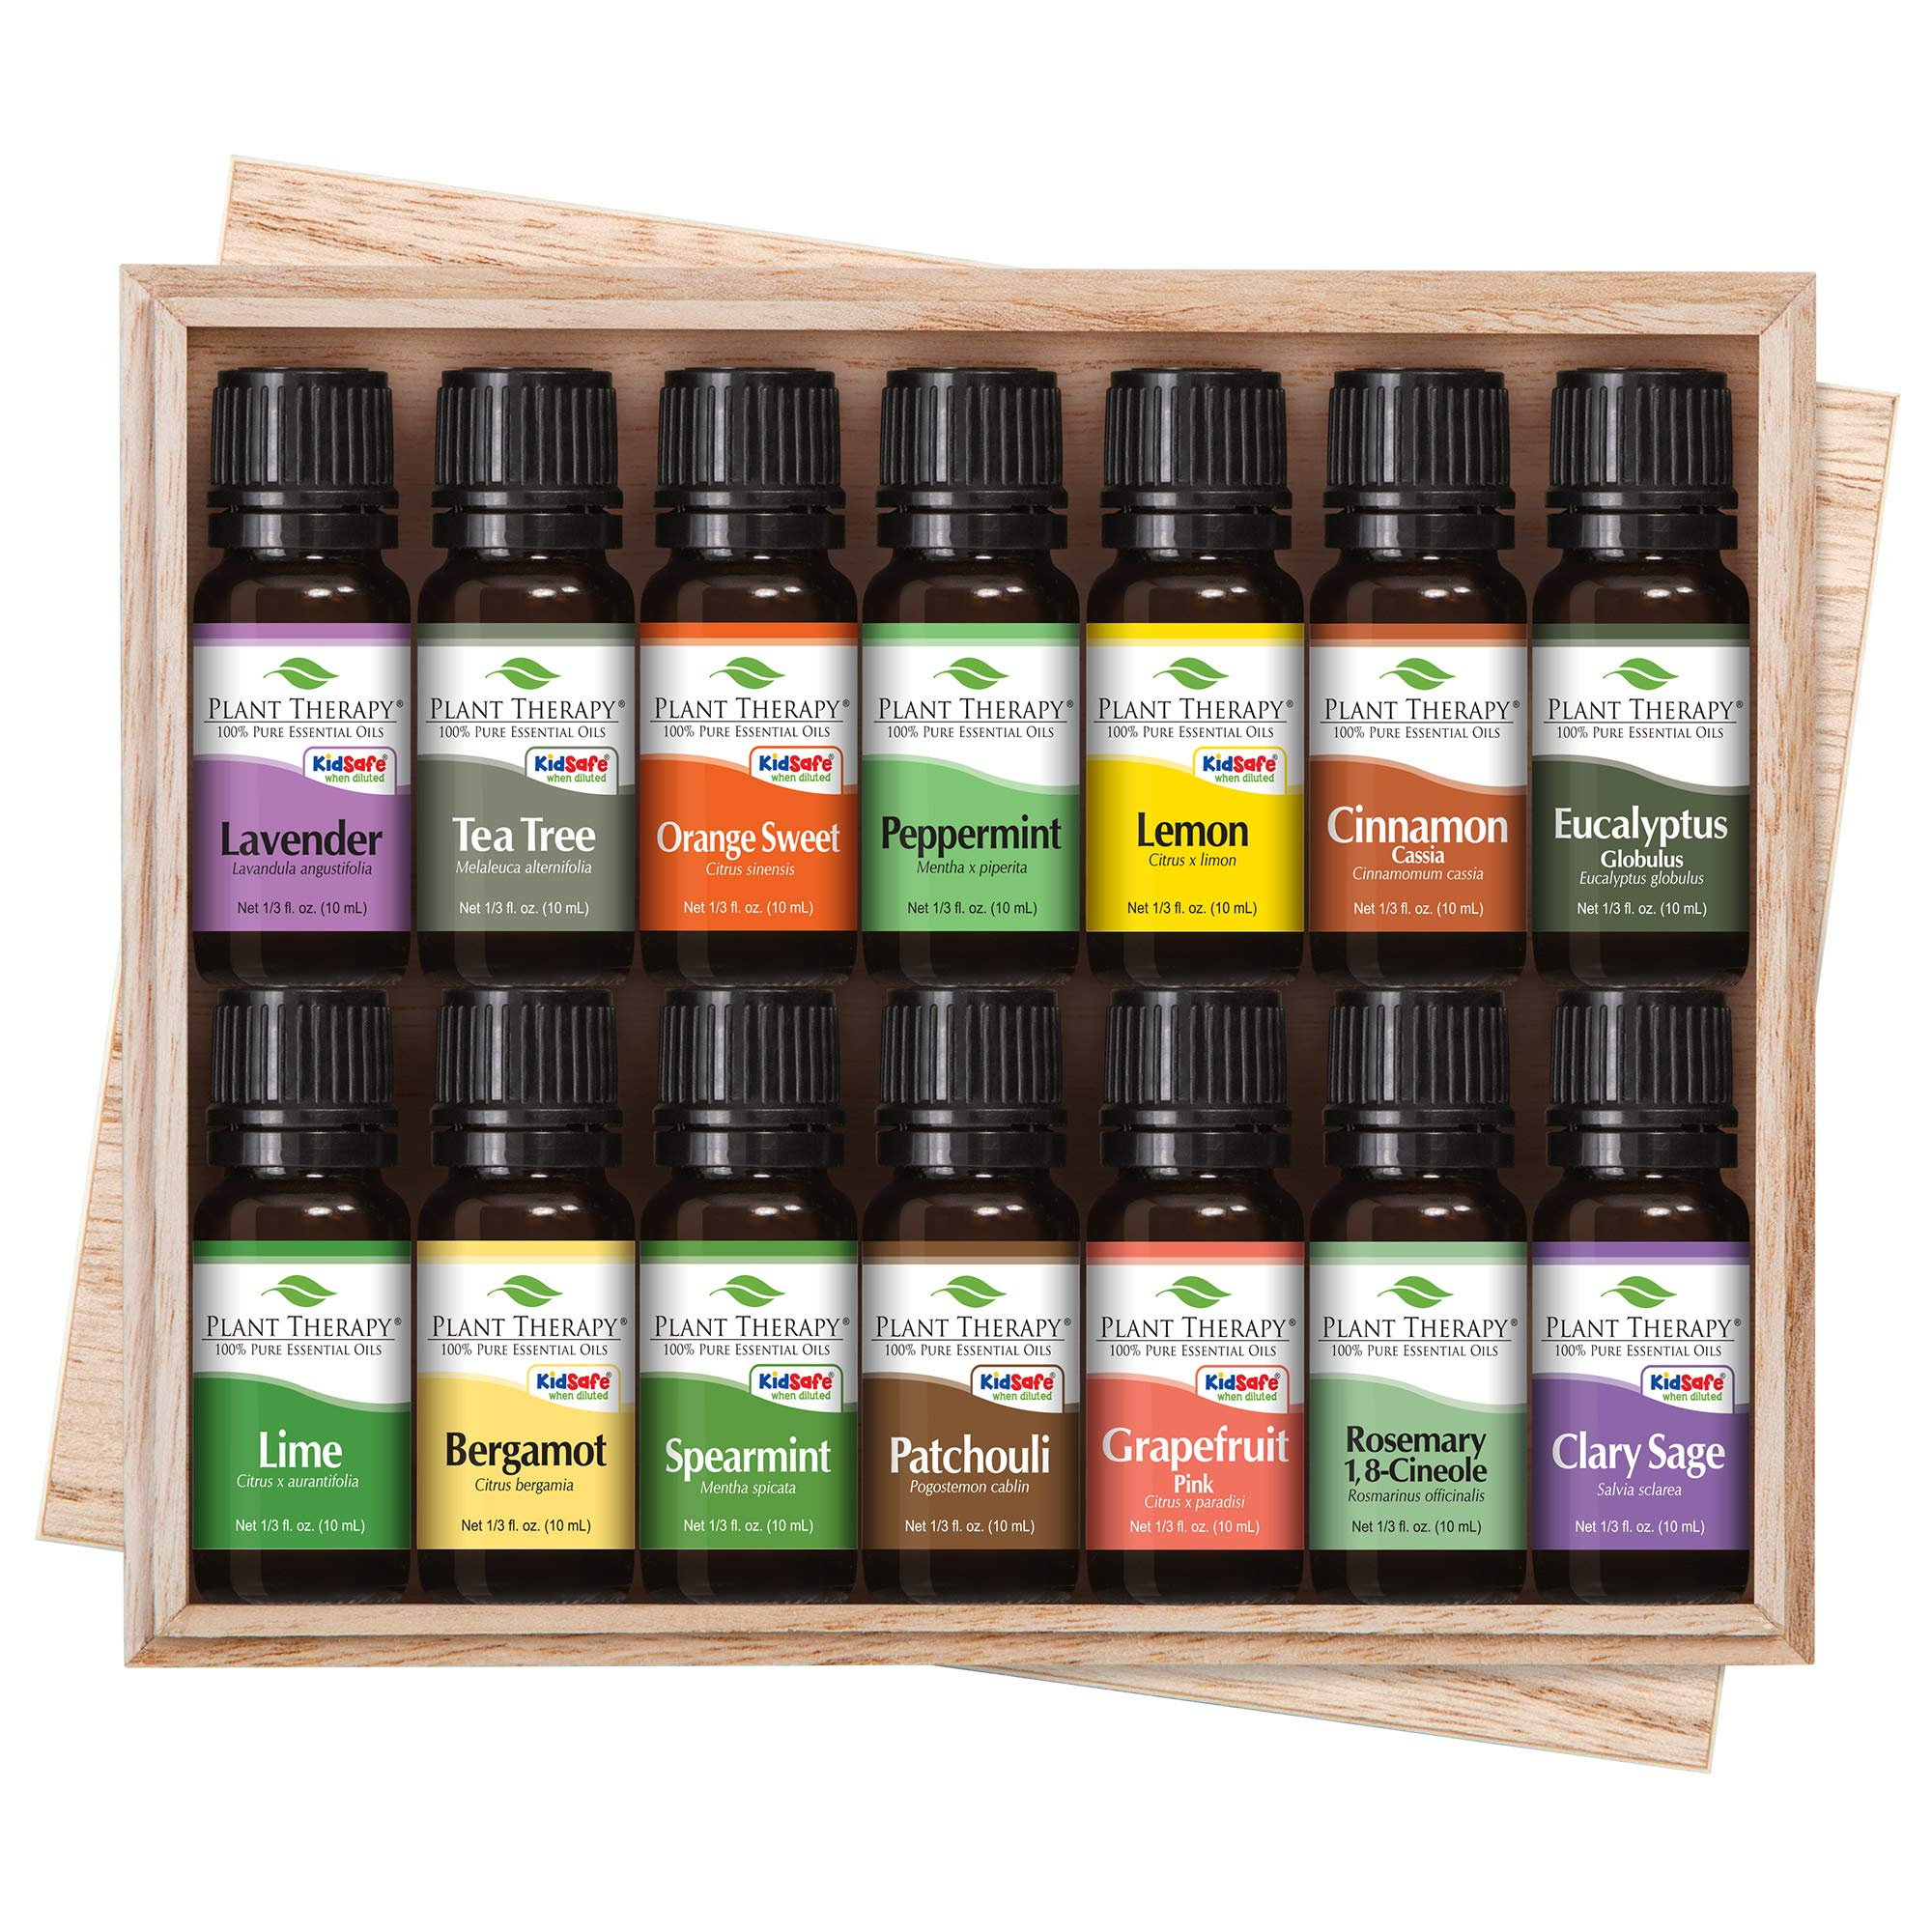 Plant Therapy Top 14 Singles Set | Lavender, Eucalyptus, Peppermint, Orange Sweet, Lemon & More in A Wooden Box | 100% Pure, Undiluted, Natural Aromatherapy, Therapeutic Grade | 10 mL (1/3 oz) by Plant Therapy